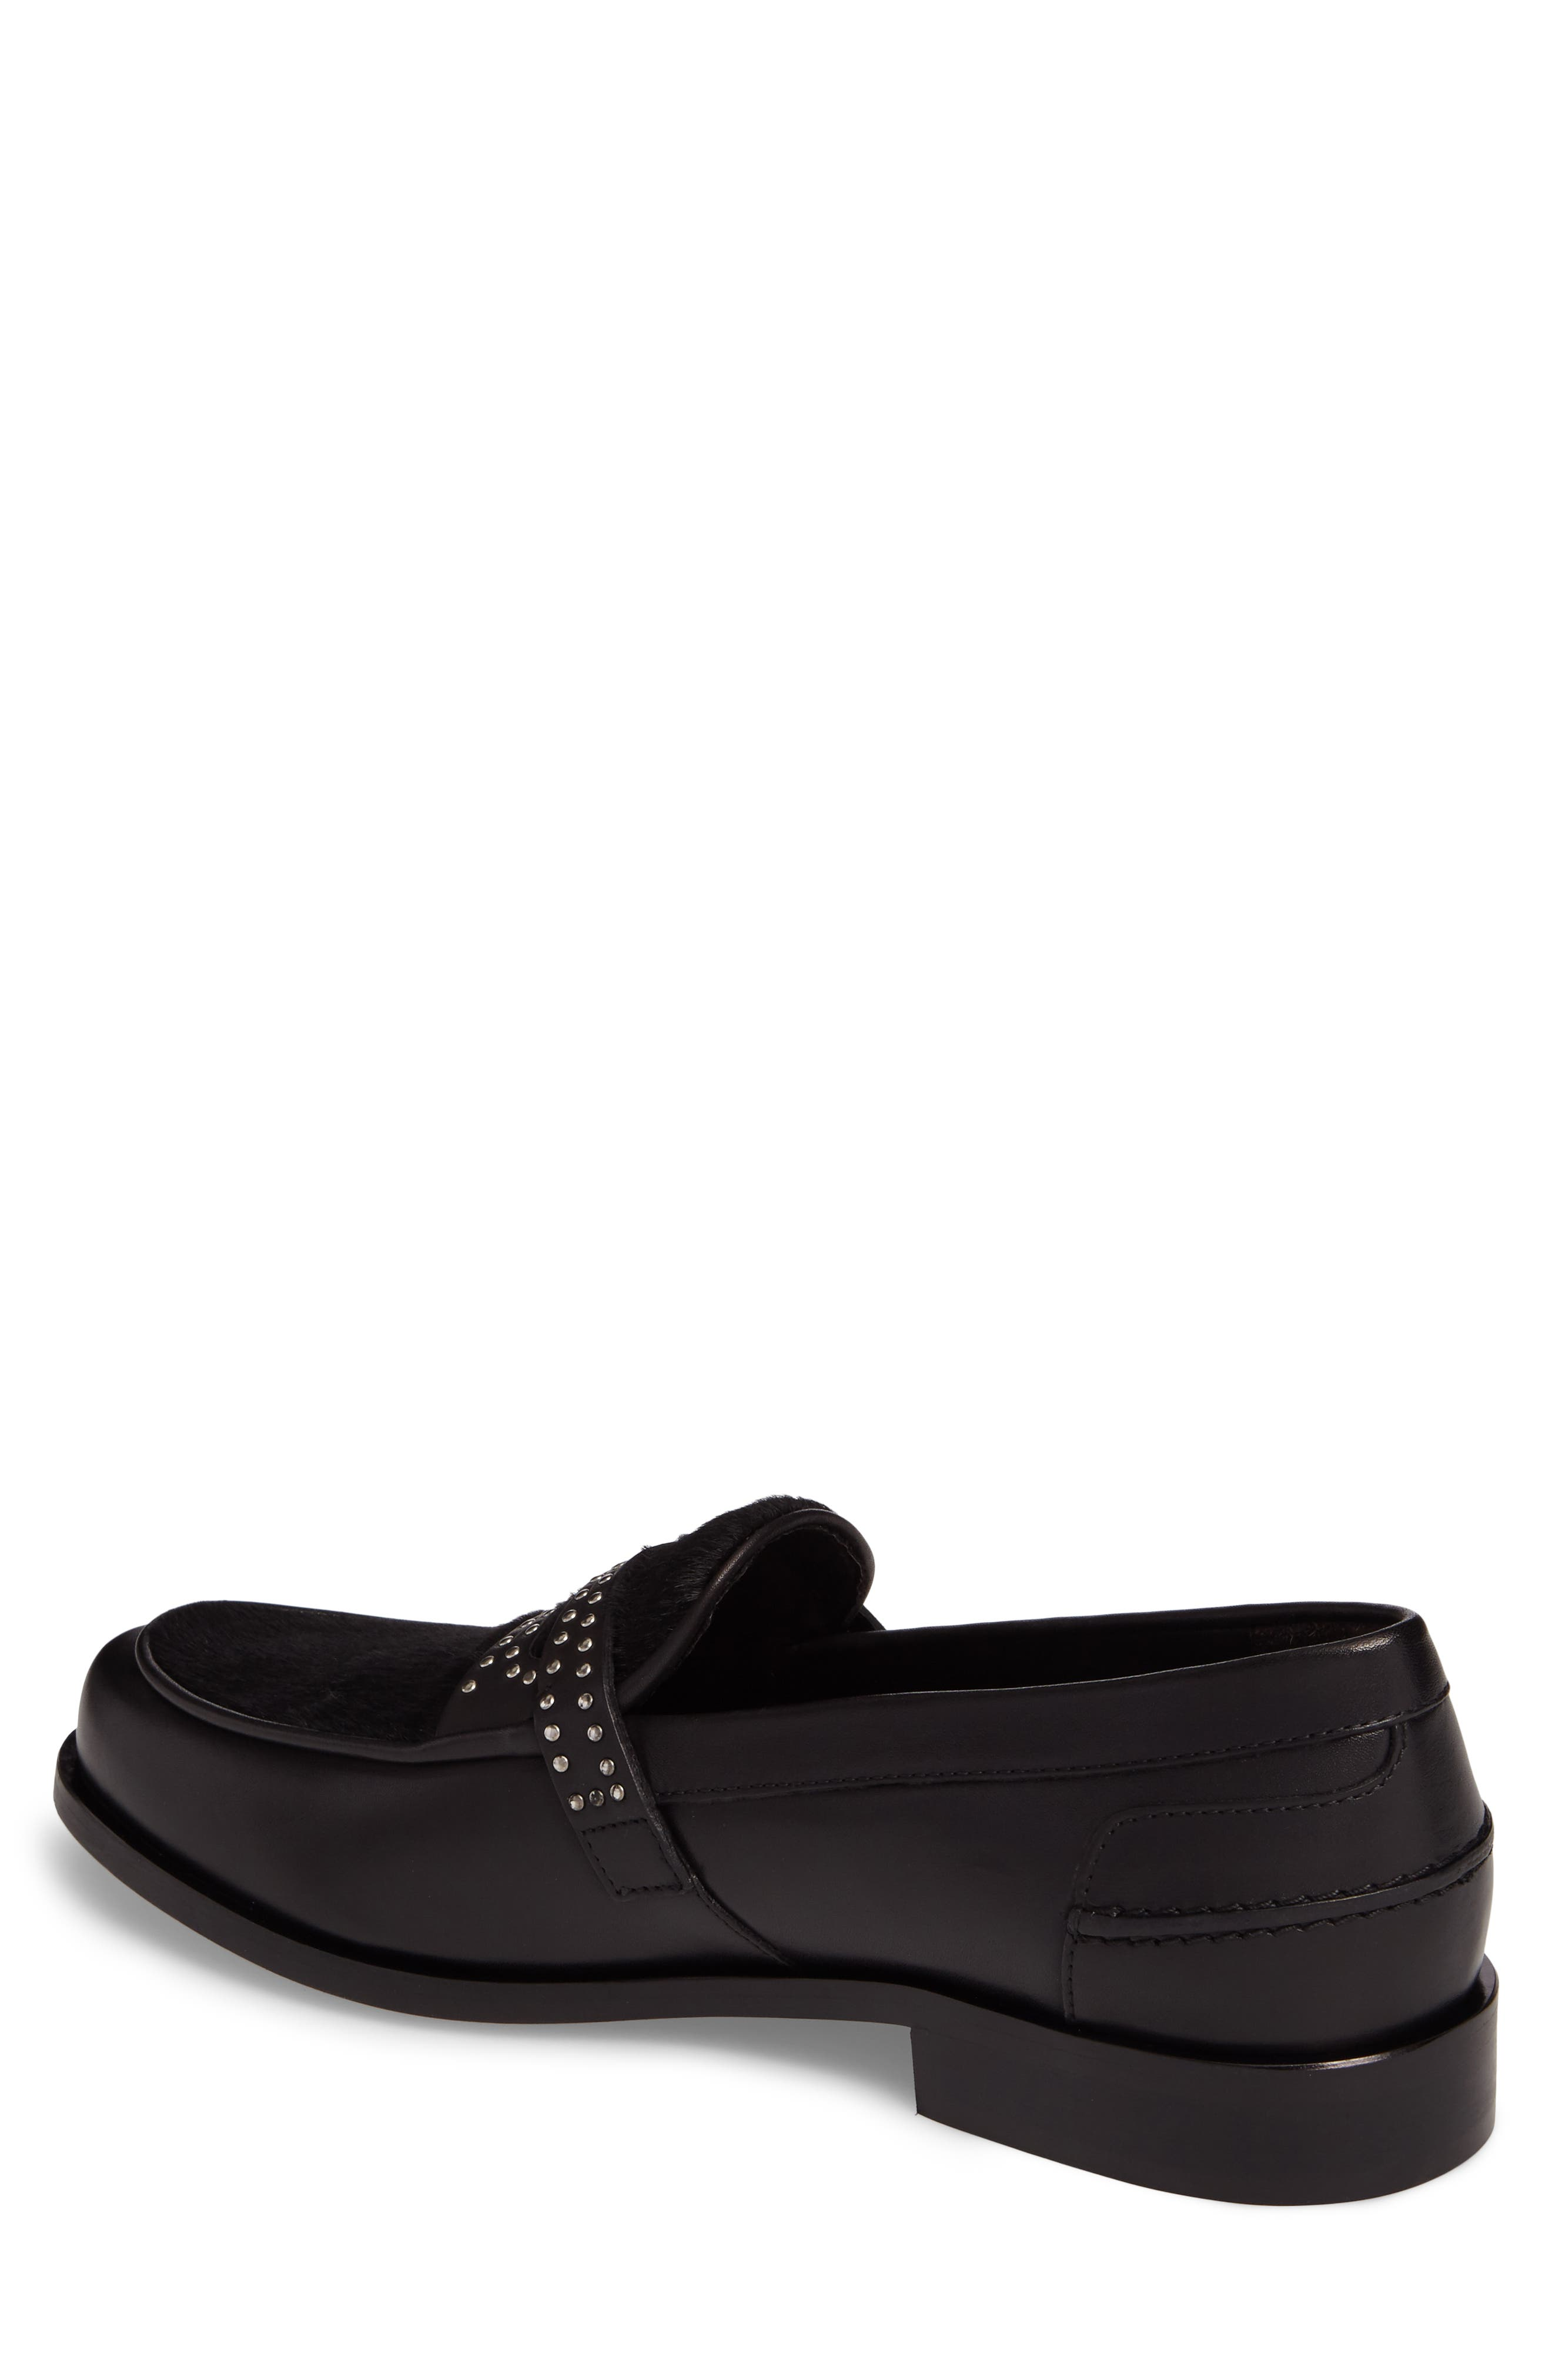 Sawyer Penny Loafer,                             Alternate thumbnail 3, color,